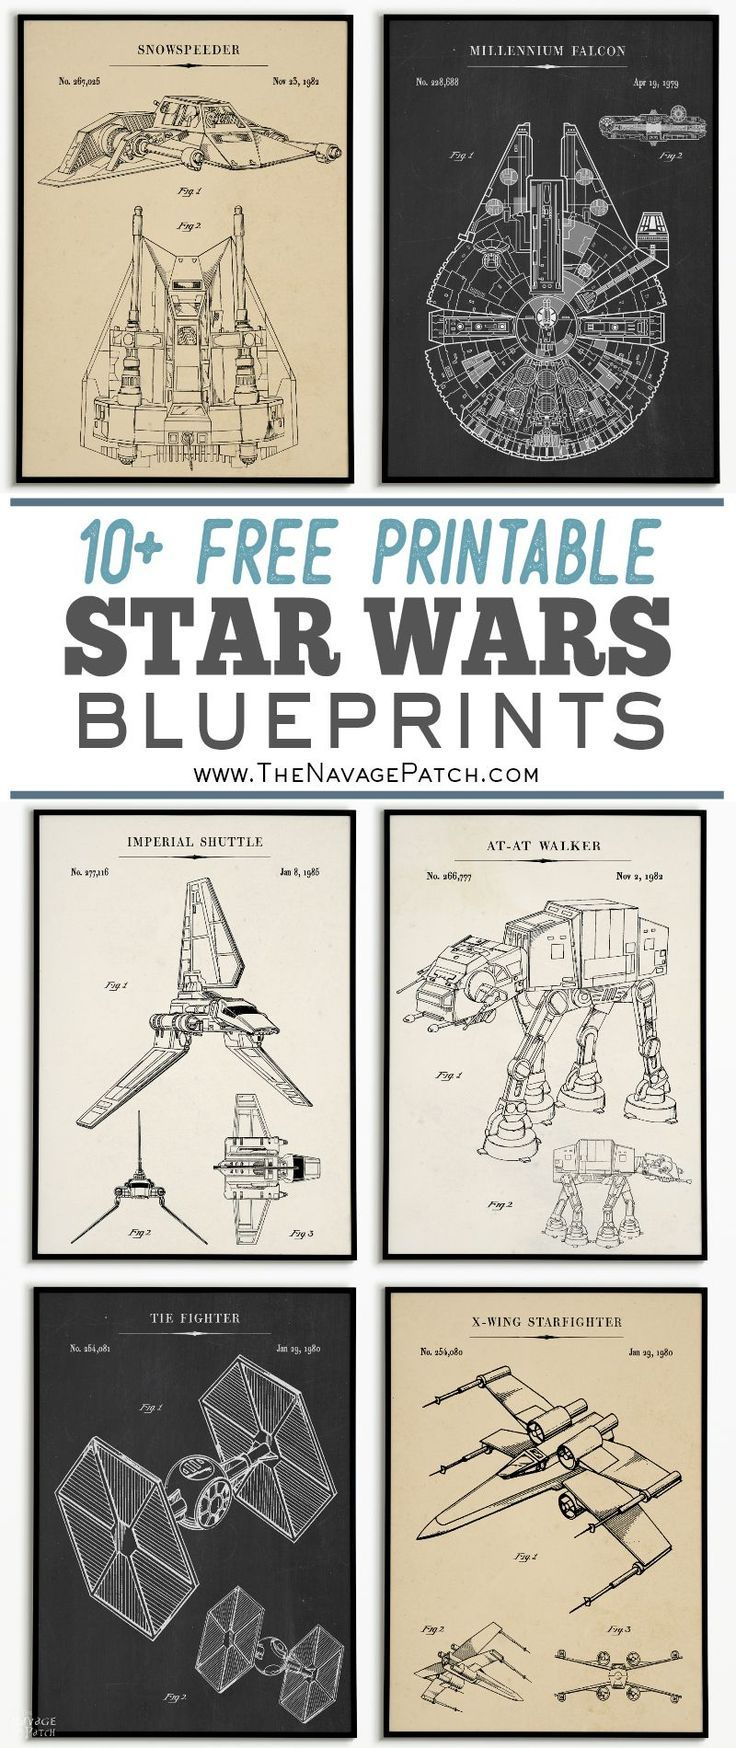 Free Printable Star Wars Blueprints | Star Wars Free Vintage - Free Printable Posters